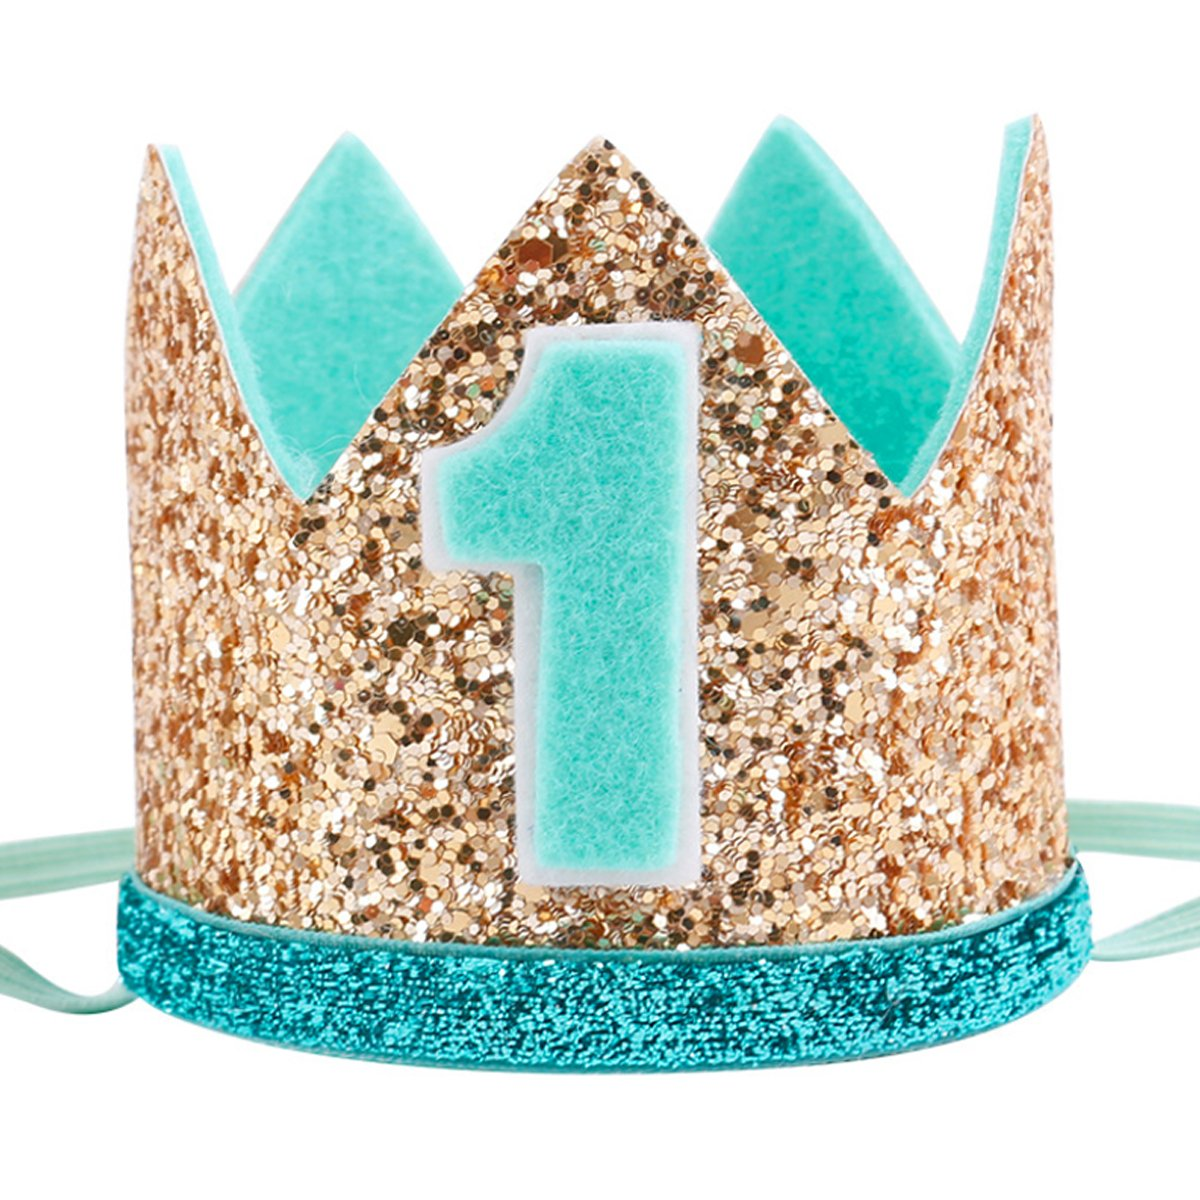 Maticr Glitter Baby Boy First Birthday Crown Number 1 Headband Little Prince Princess Cake Smash Photo Prop SG/_B07FGGC2RN/_US